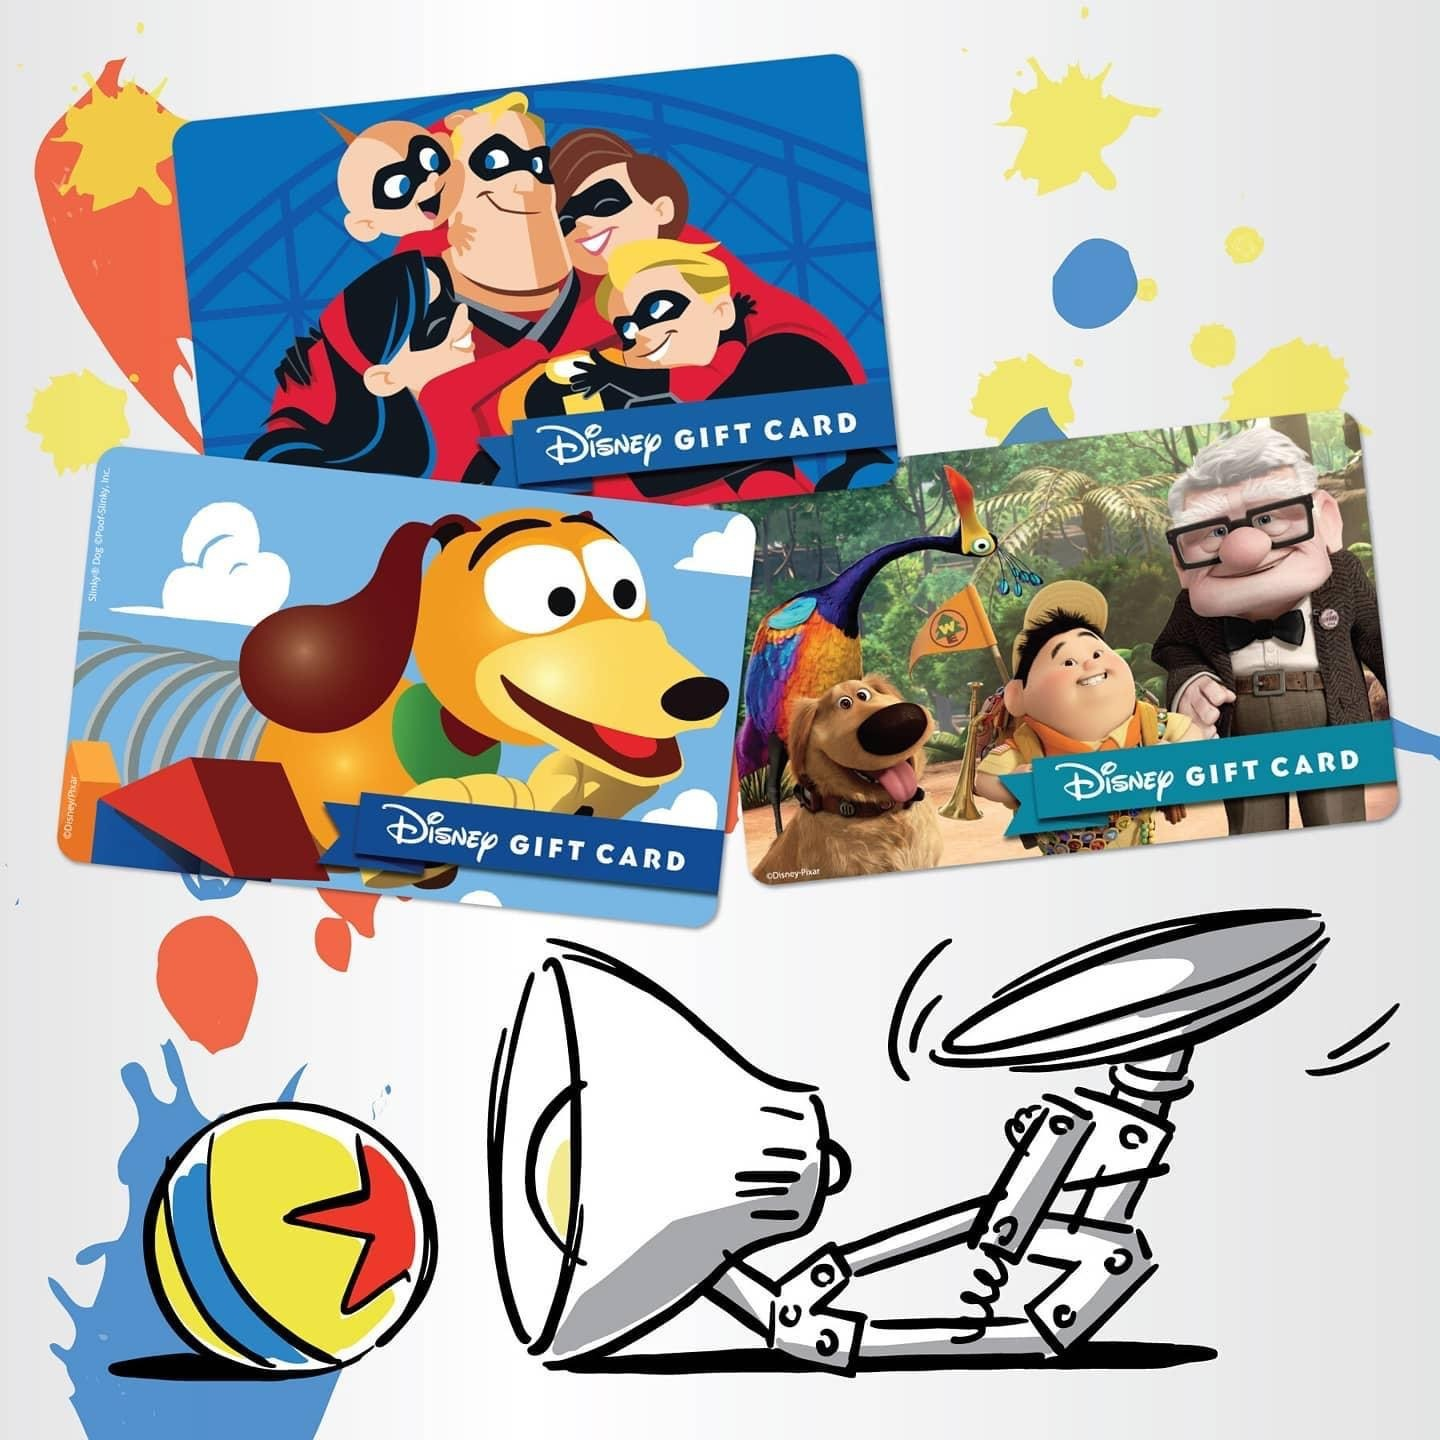 New Disney Gift Card Designs for Your Holiday Gift Giving from shopDisney! 4